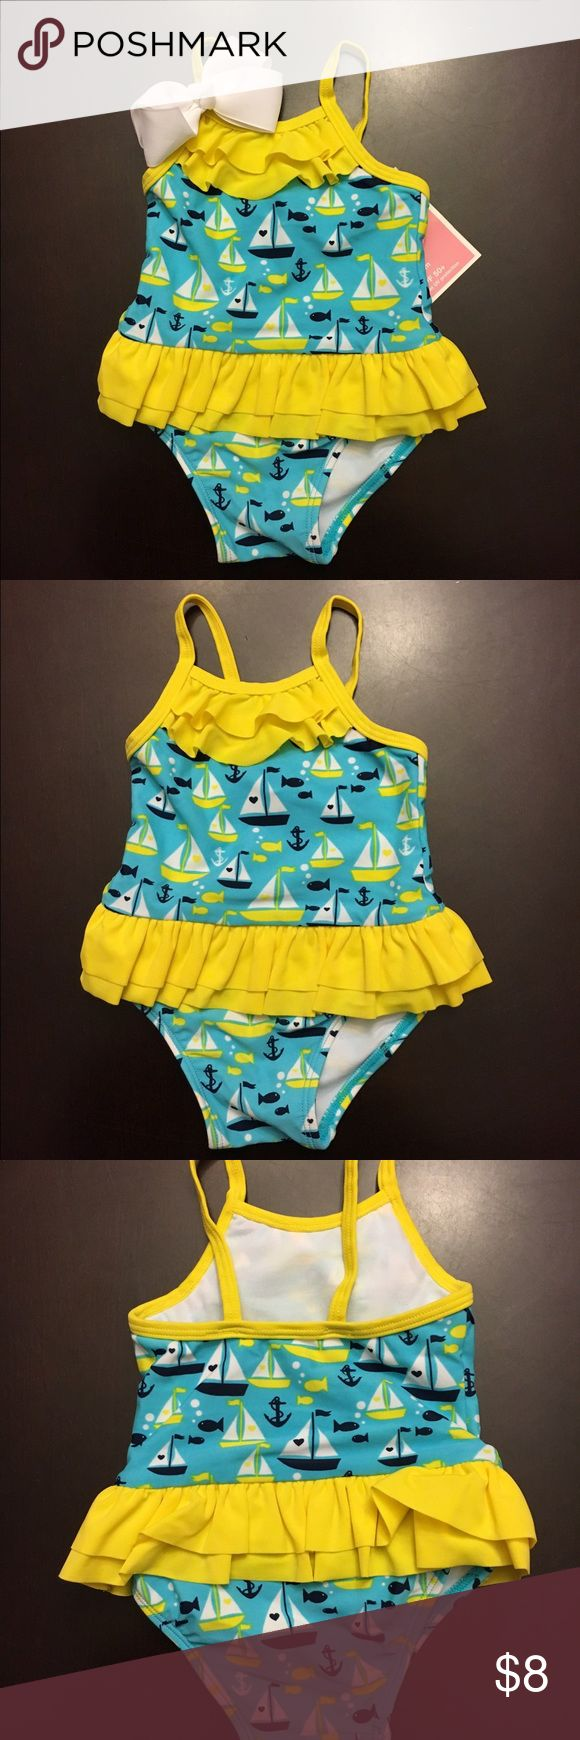 """🎀NWT One-Piece Swimsuit """"Sailboats"""" - 9 Months Brand new with tags One Piece Swimsuit - Sailboats print. The hair bow is not included with the swimsuit. Size 9 months. Perfect for your little water bug!! Circo Swim One Piece"""